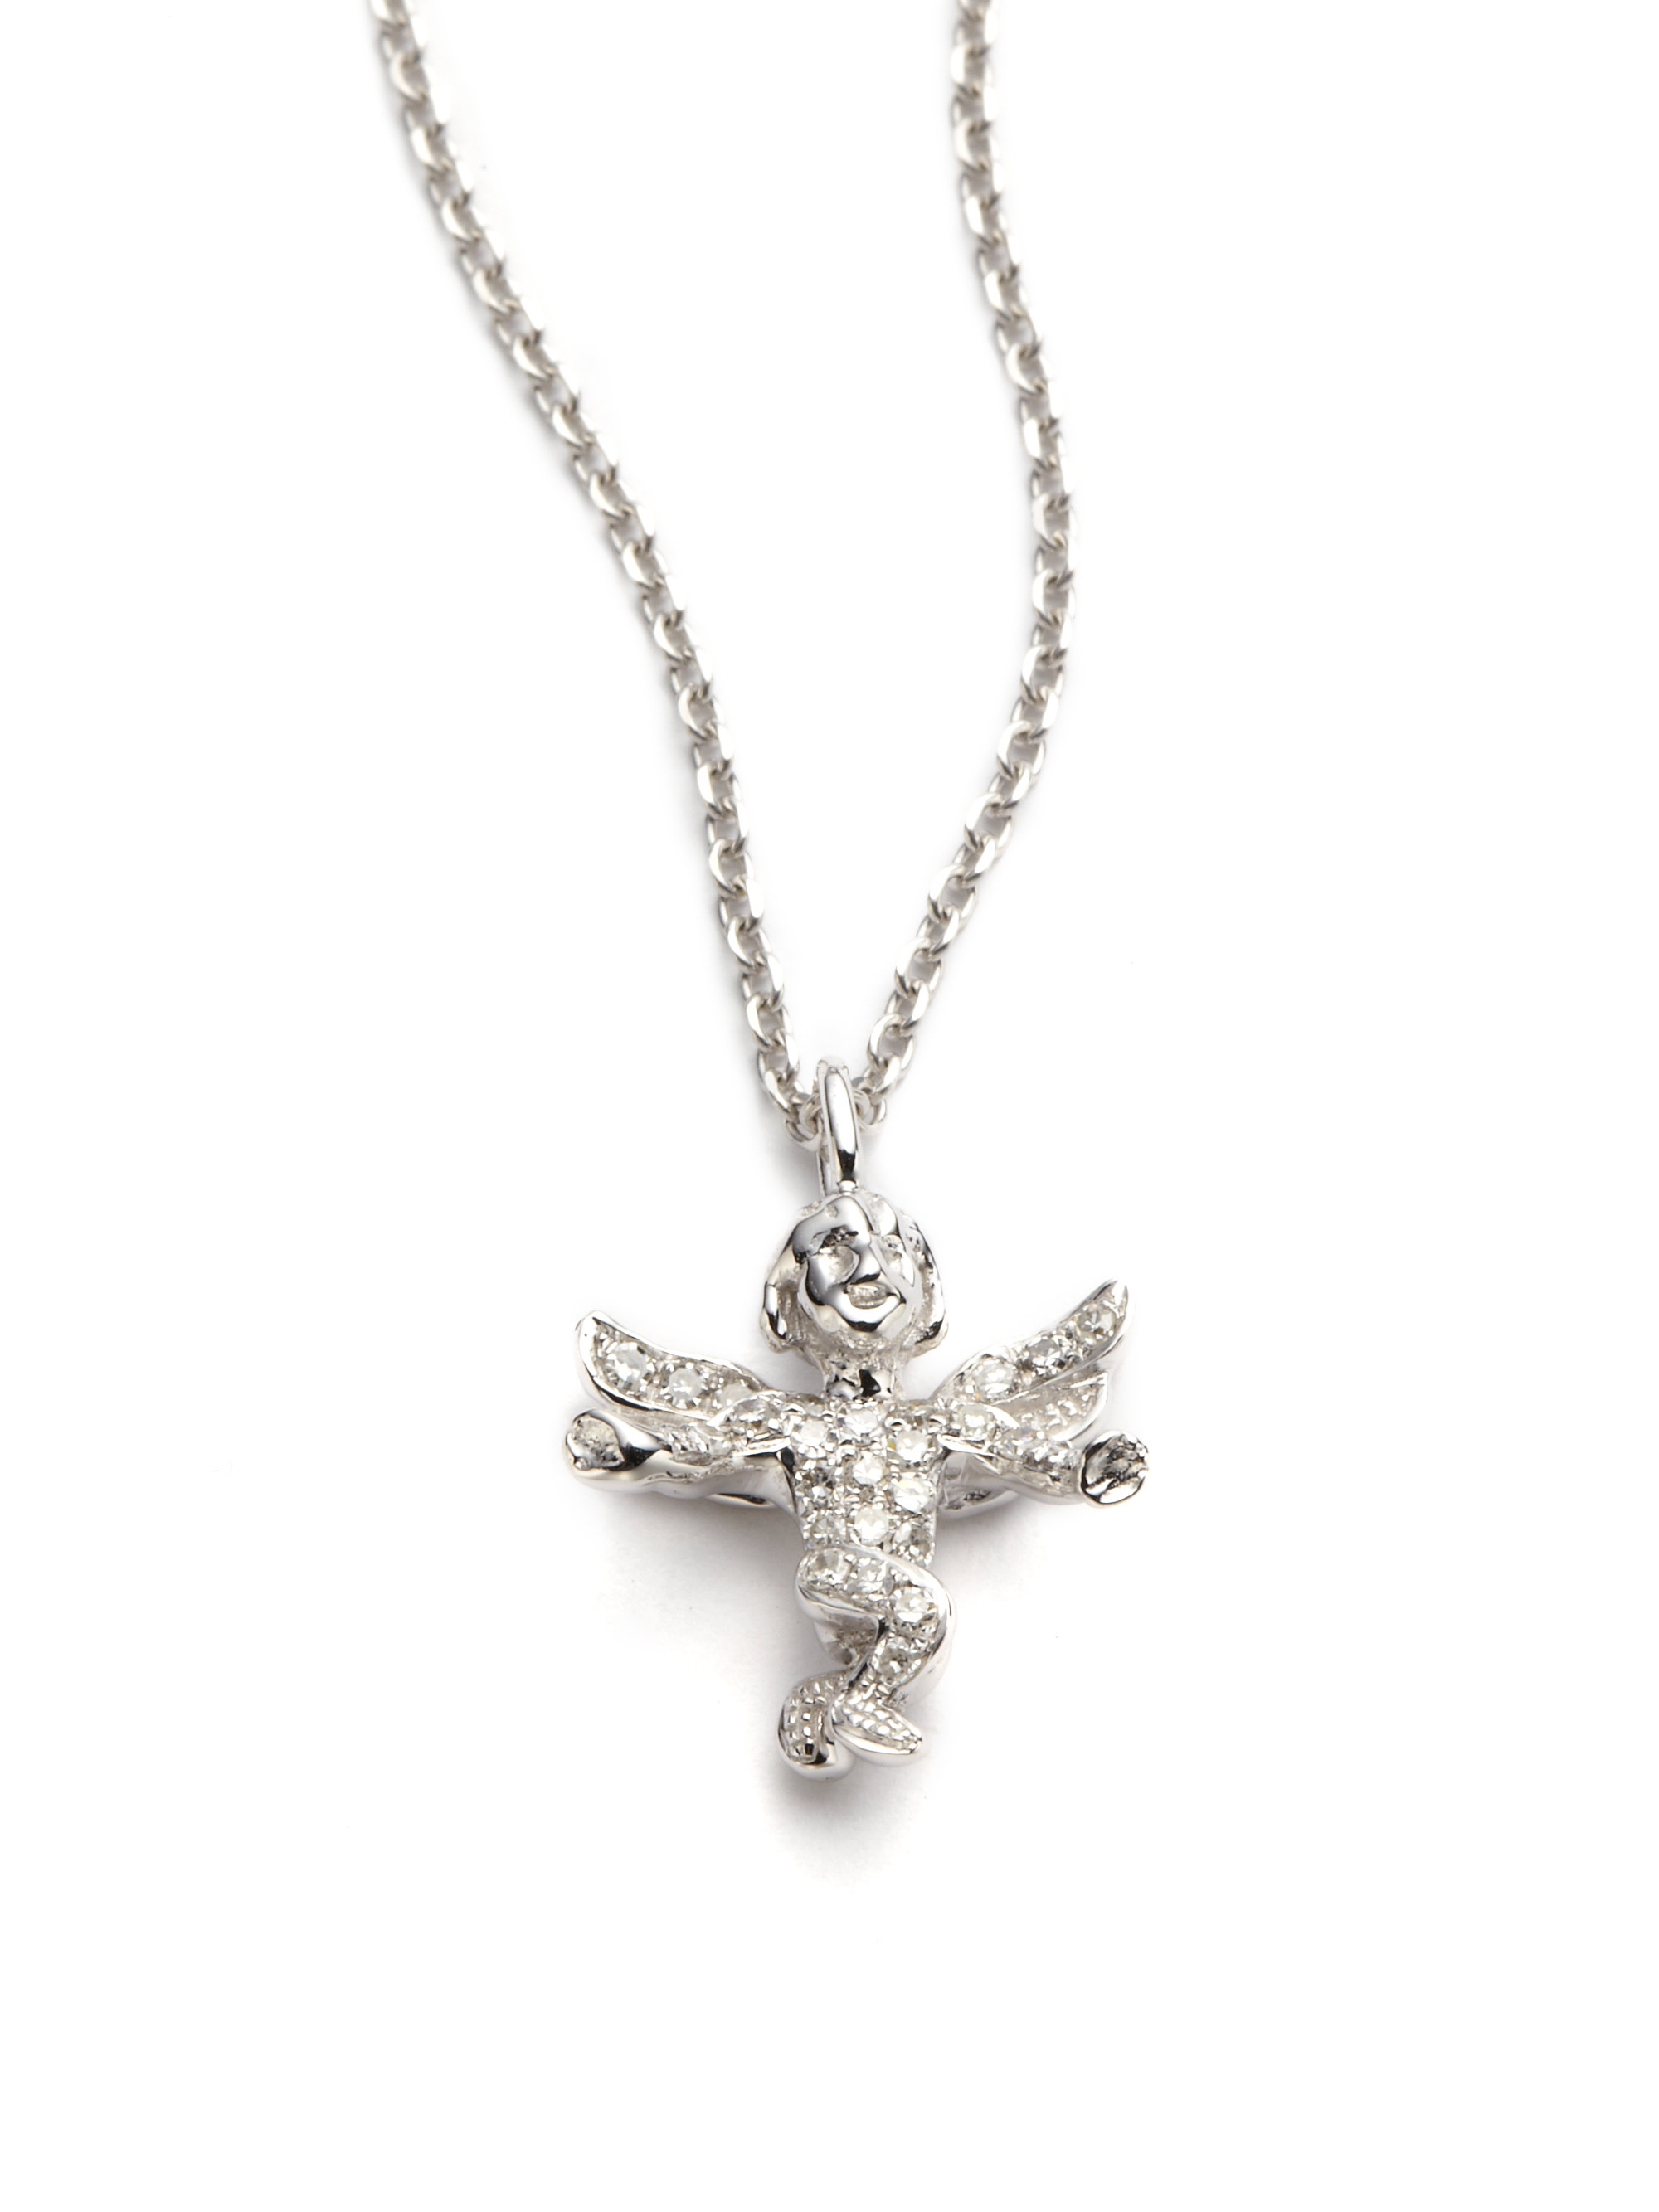 Lyst kc designs diamond guardian angel pendant necklace in white gallery aloadofball Image collections